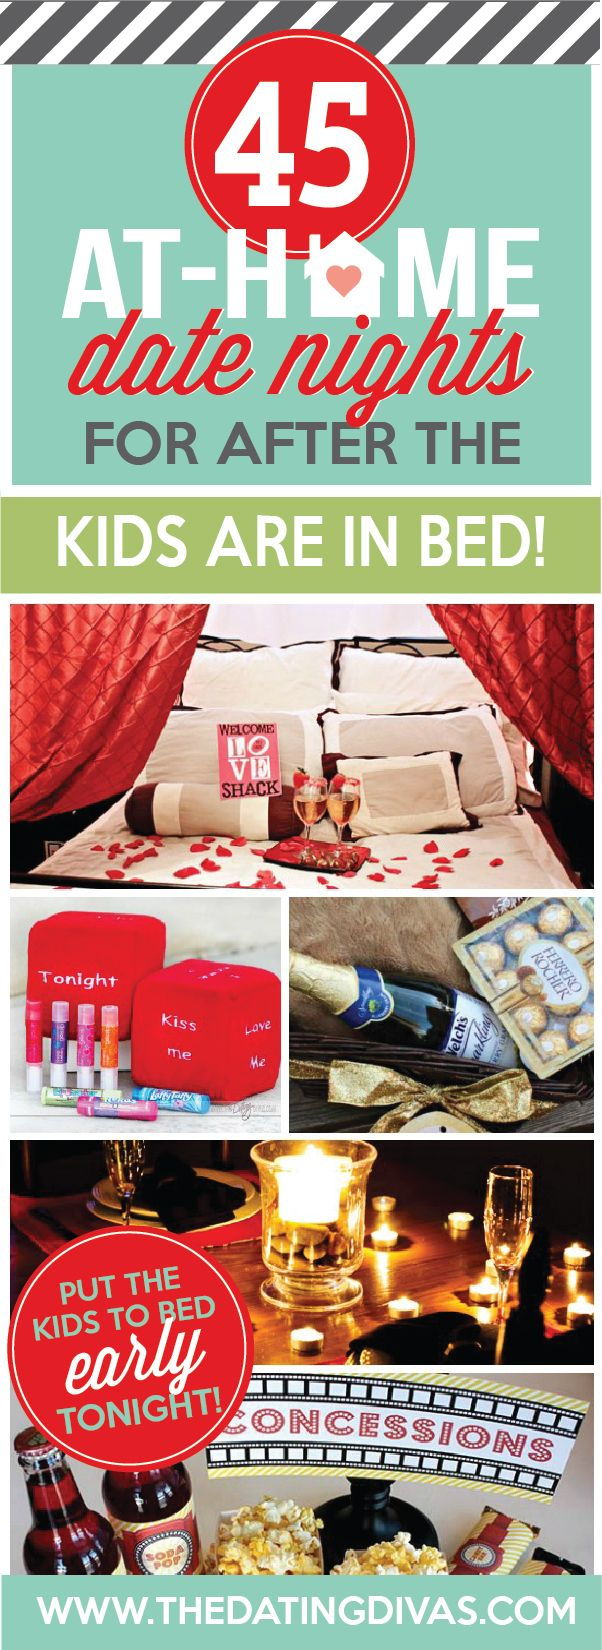 Date night ideas that you can do from home after the kids are in bed. Date night ideas range from silly to sexy! I SO need this! www.TheDatingDivas.com